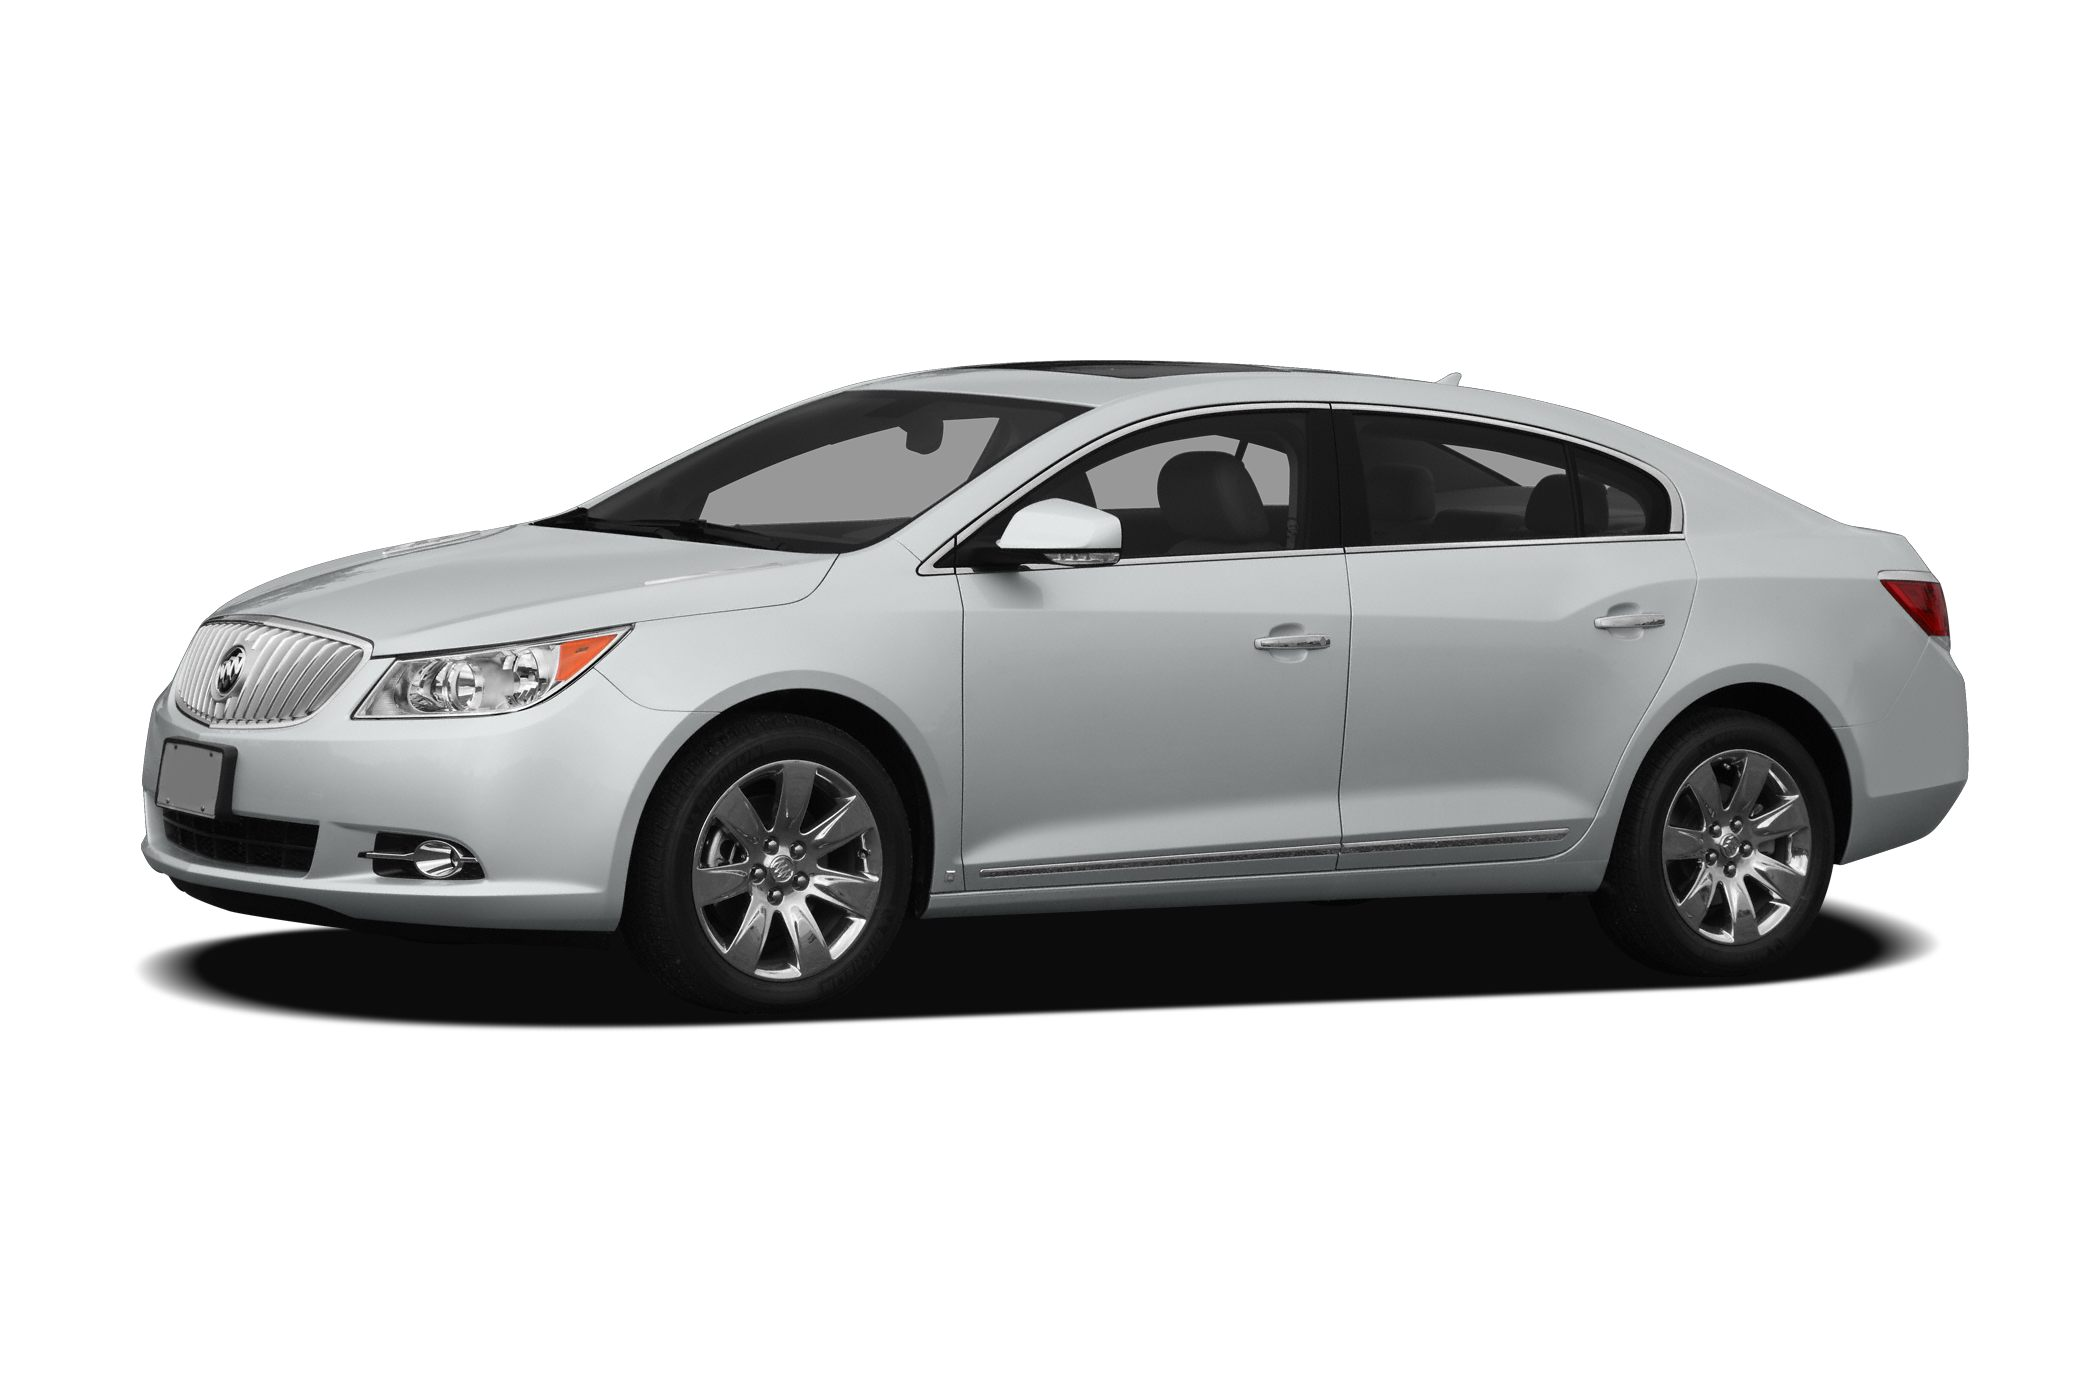 2011 Buick LaCrosse CXL Land a deal on this 2011 Buick LaCrosse CXL before someone else snatches i